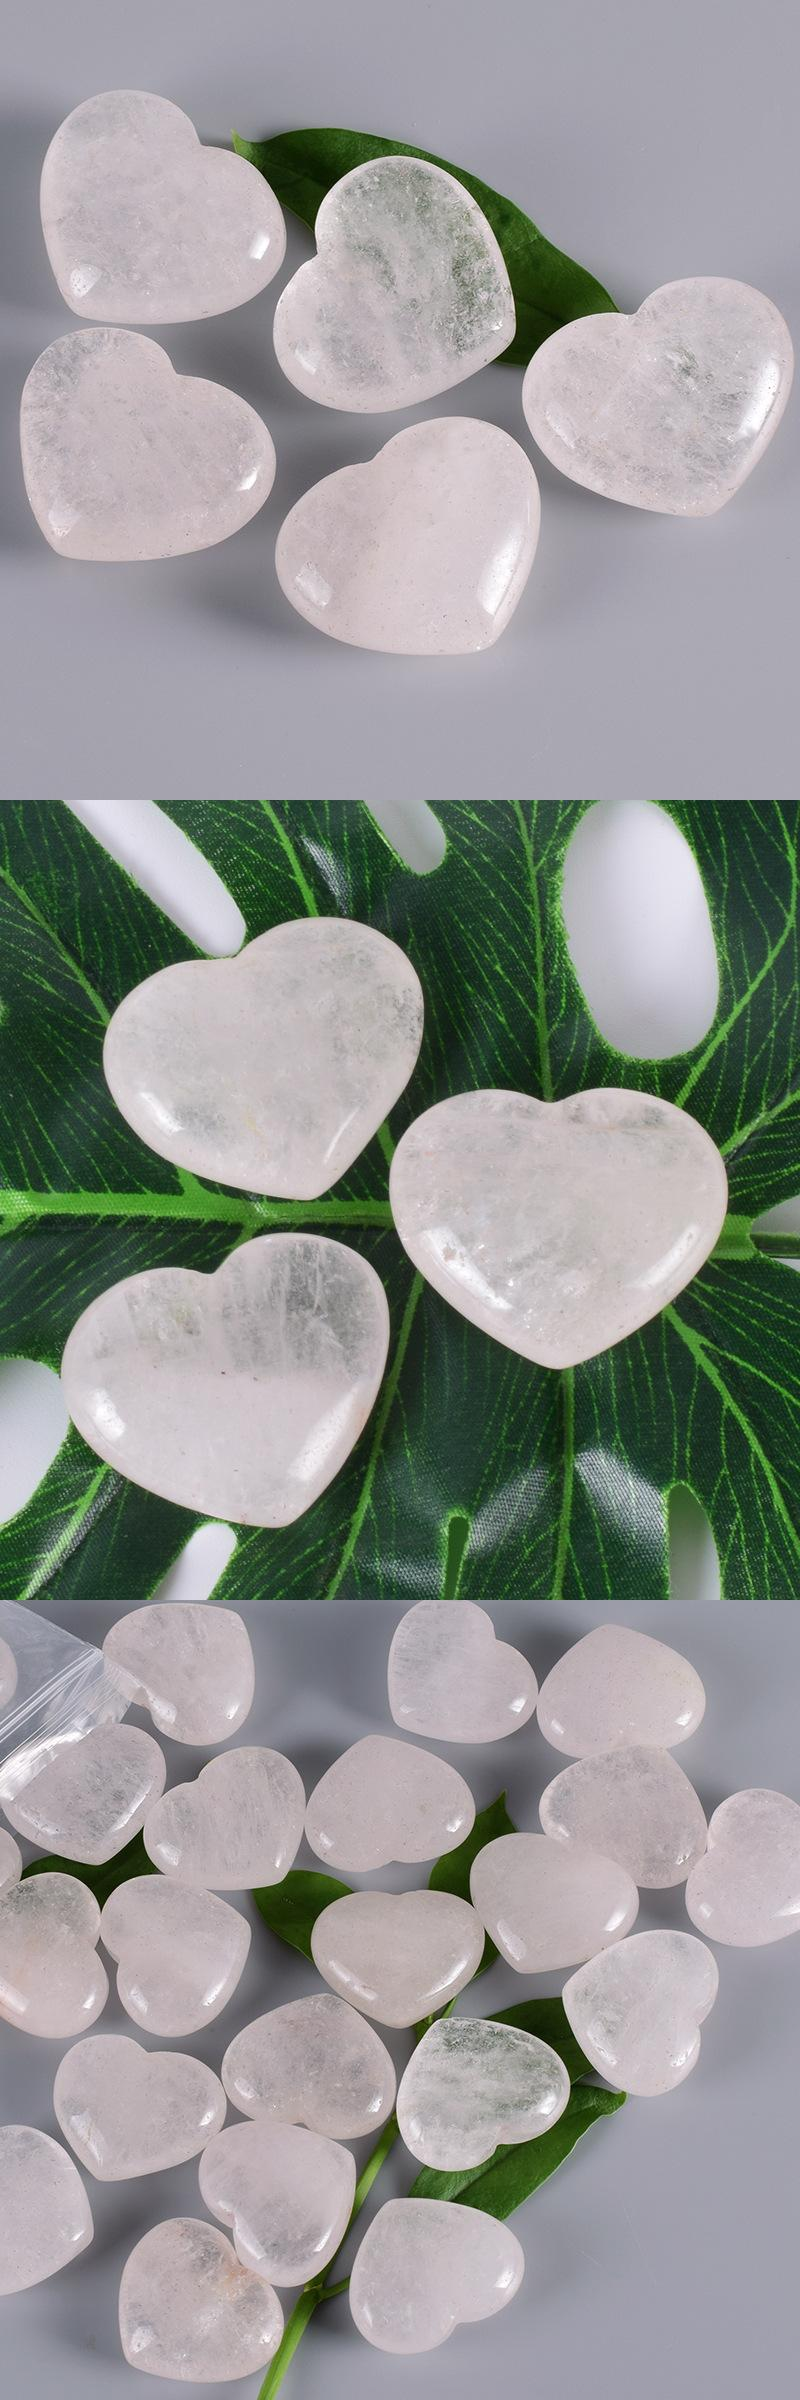 Healing stones large heart shaped clear quartz pendant carved